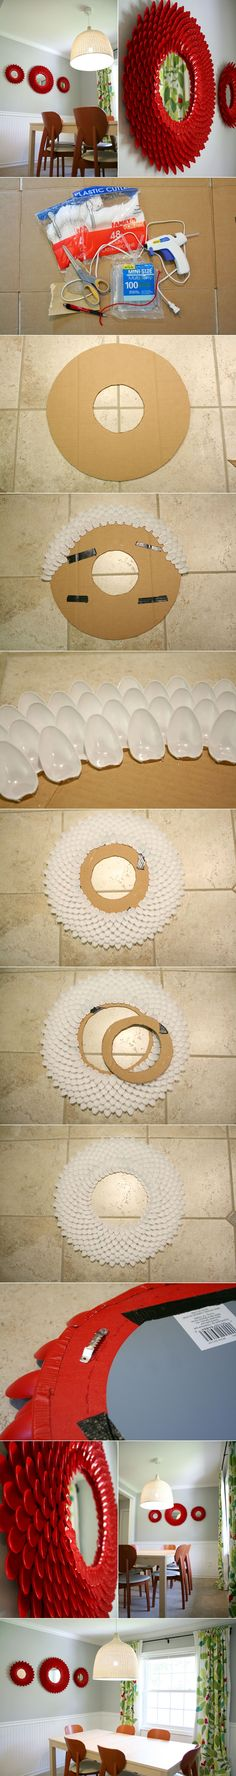 That's a LOT of spoons! DIY Decorative Chrysanthemum Mirror with Plastic Spoons